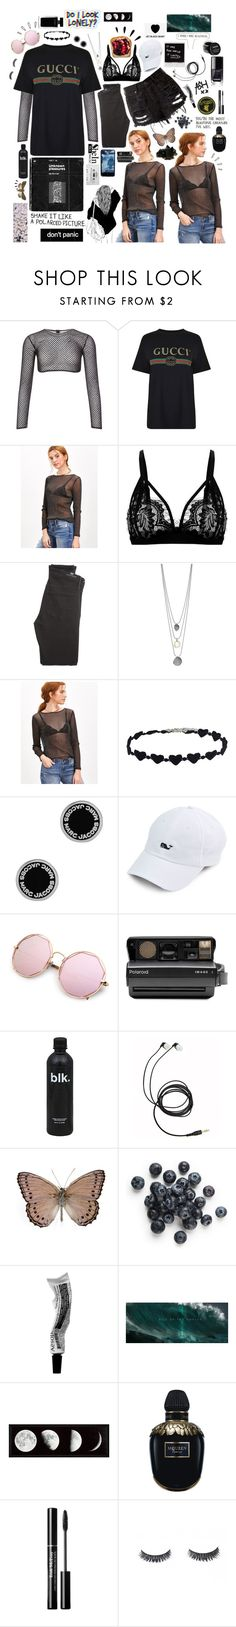 """""""Maybe?..."""" by c-b-bligaard ❤ liked on Polyvore featuring PA5H, Helmut Lang, Citizens of Humanity, Marc Jacobs, Polaroid, CASSETTE, Old Navy, Alexander McQueen, Narciso Rodriguez and NYX"""